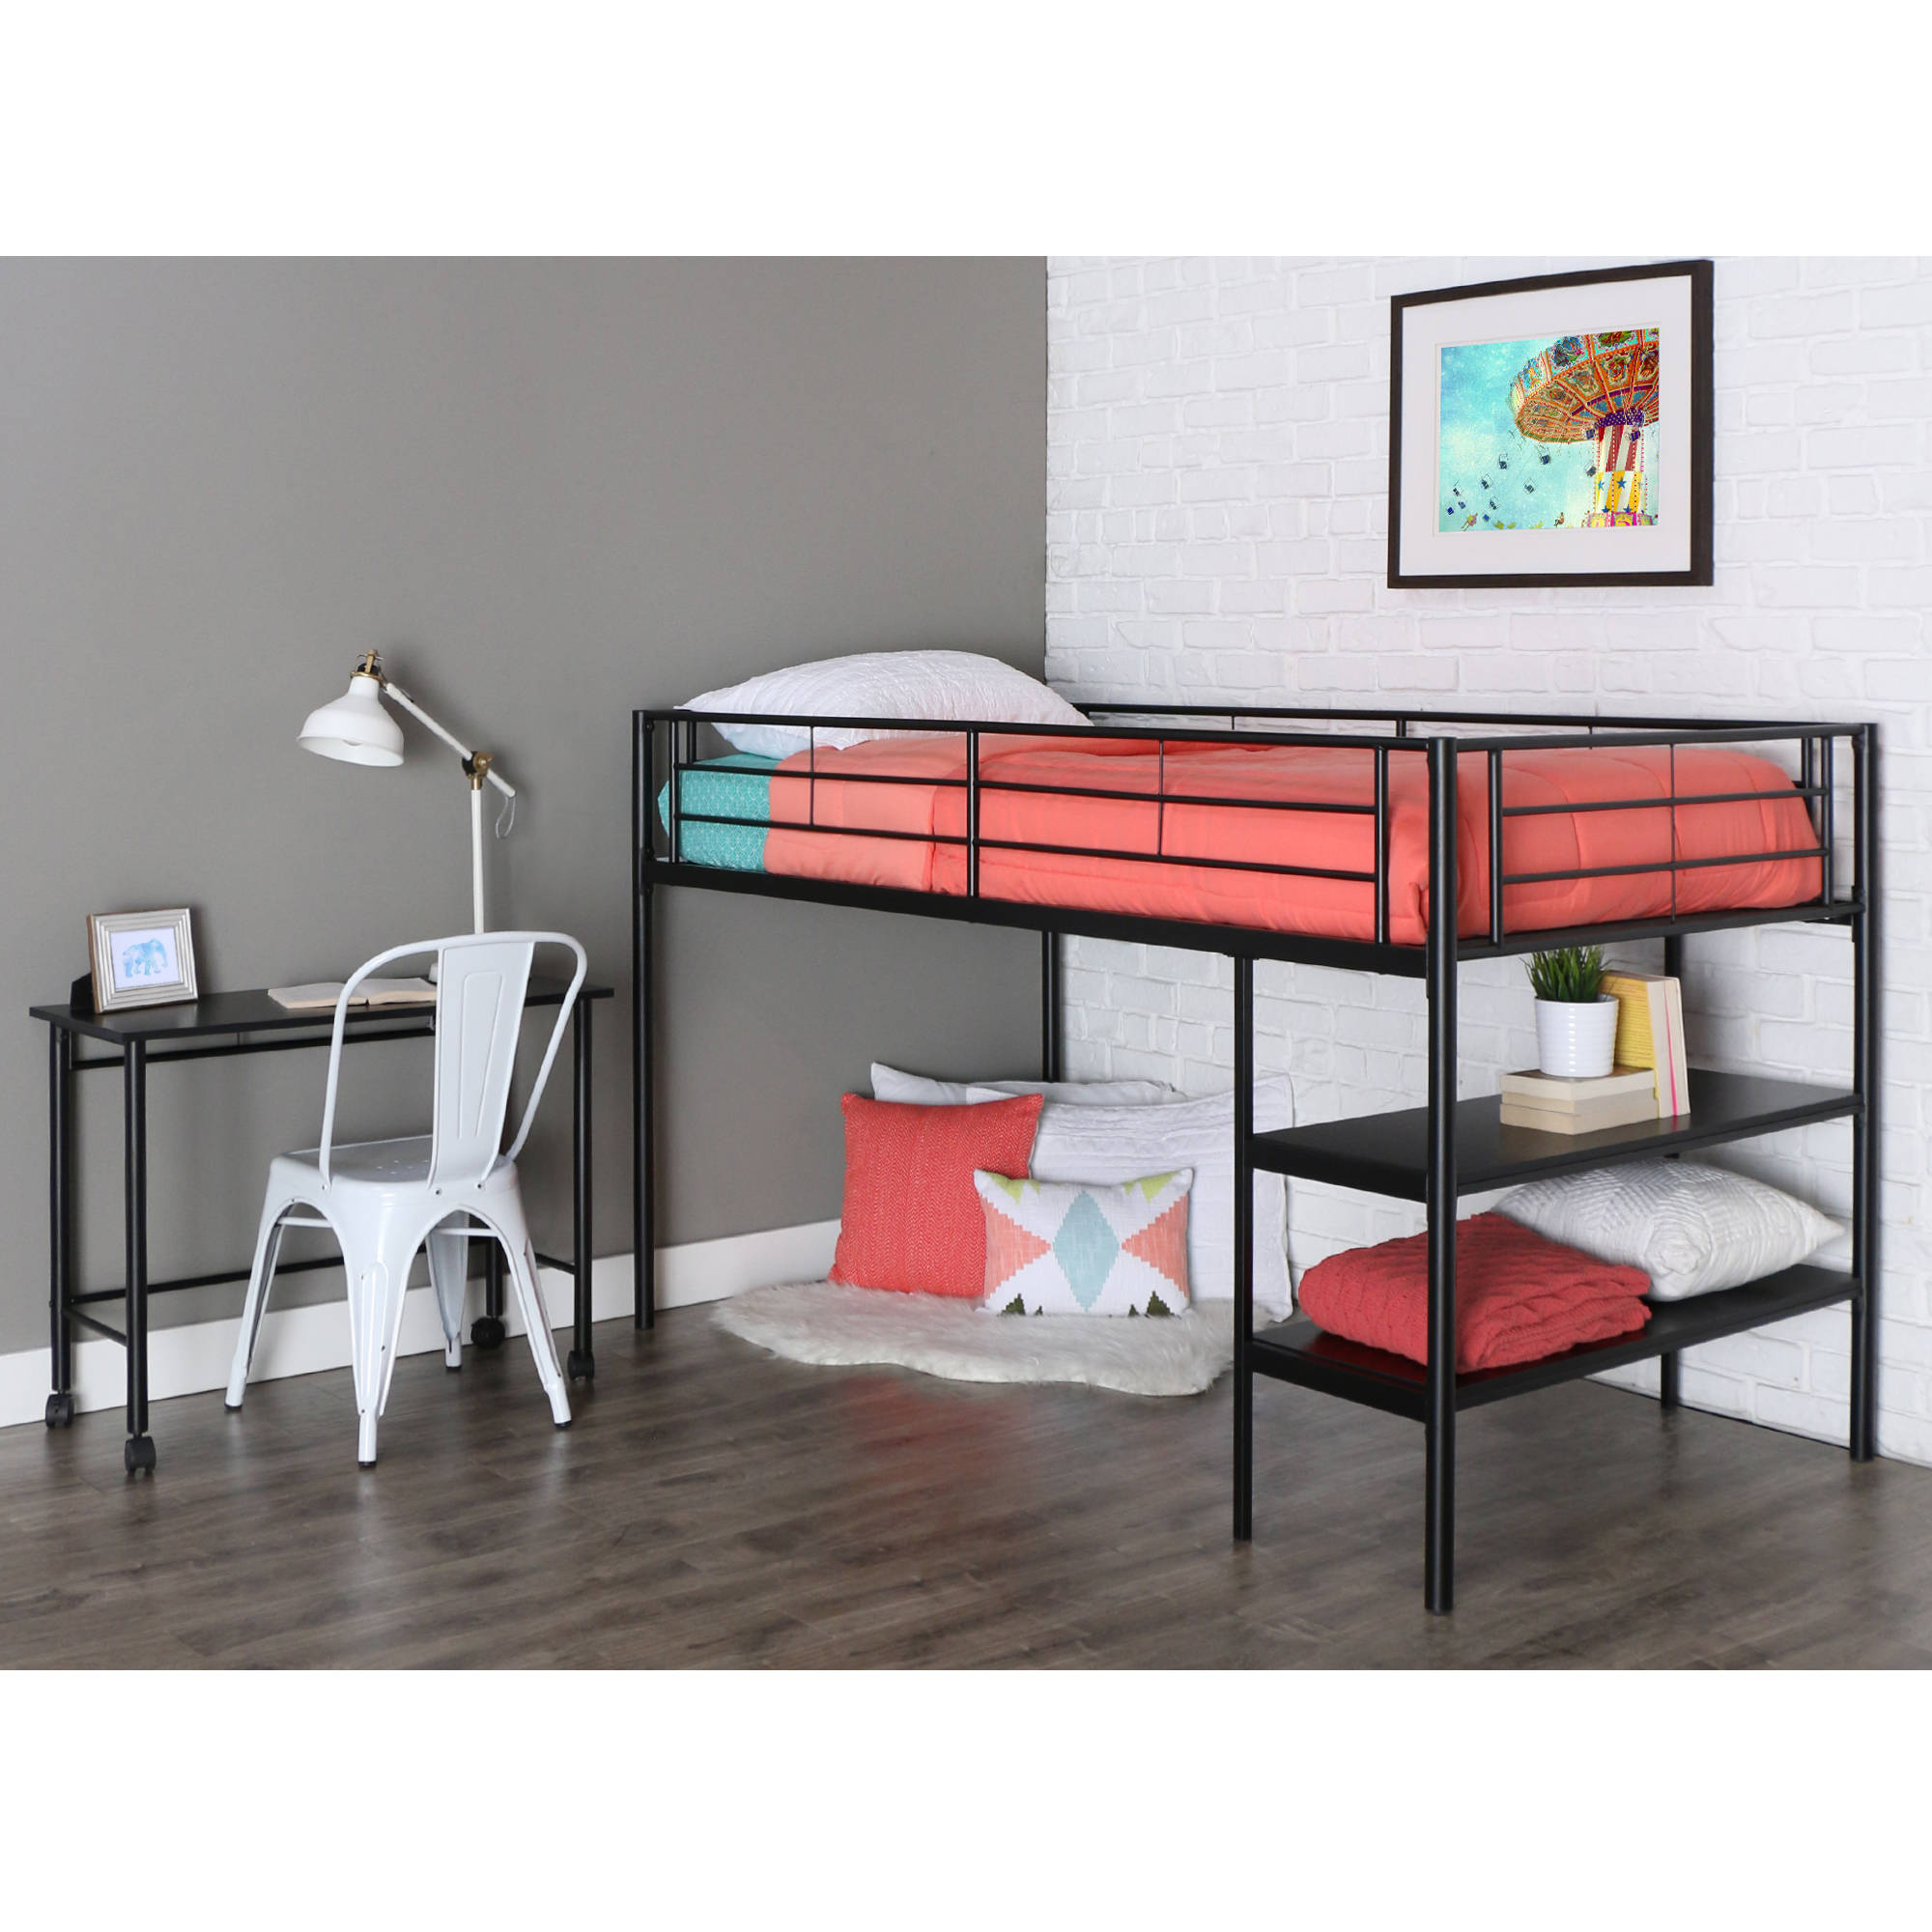 Twin Metal Loft Bed with Desk and Shelving - Black